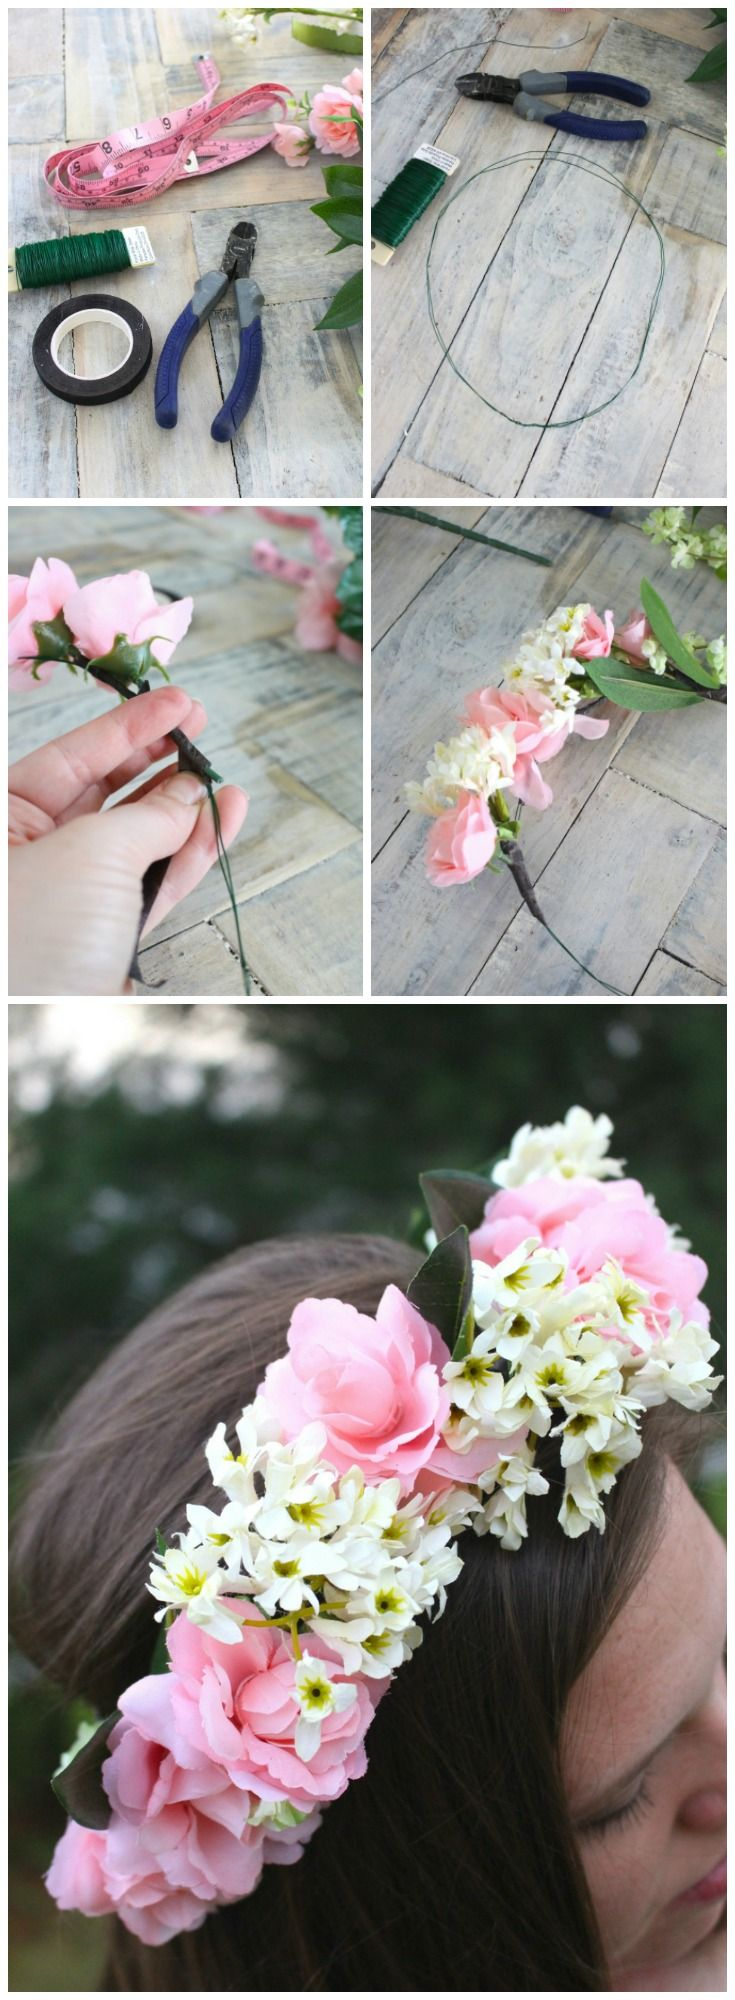 How to make your own boho flower crown. Easy and simple DIY perfect for any hairstyle, wedding, or photoshoot.